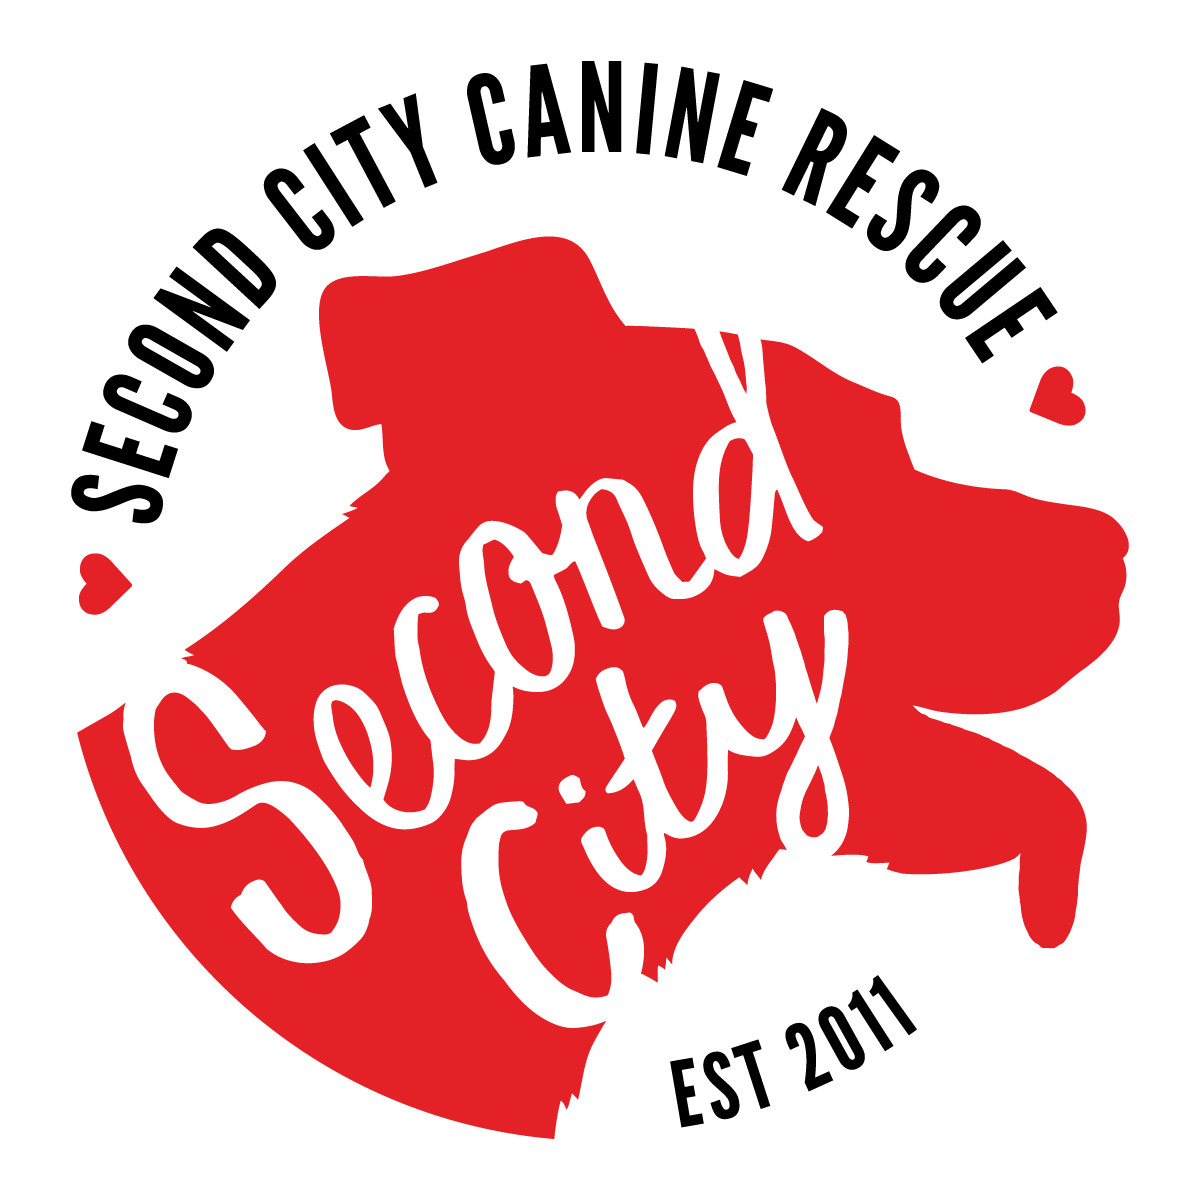 Adoptable Dogs – Second City Canine Rescue